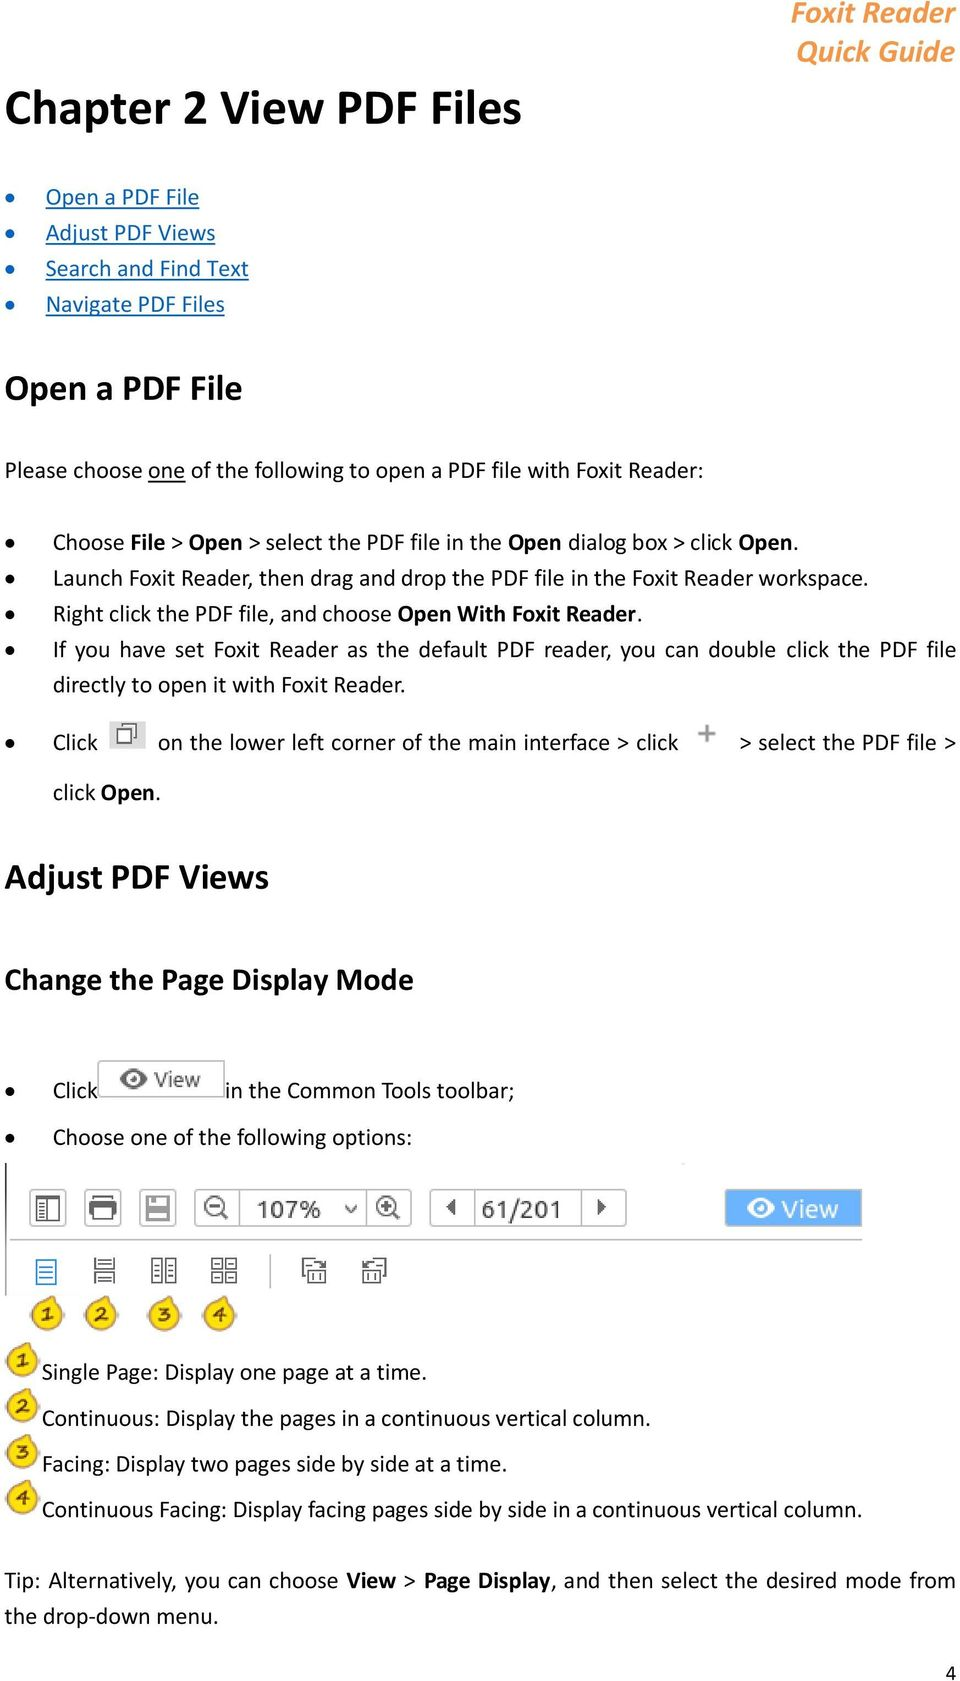 Right click the PDF file, and choose Open With Foxit Reader. If you have set Foxit Reader as the default PDF reader, you can double click the PDF file directly to open it with Foxit Reader.